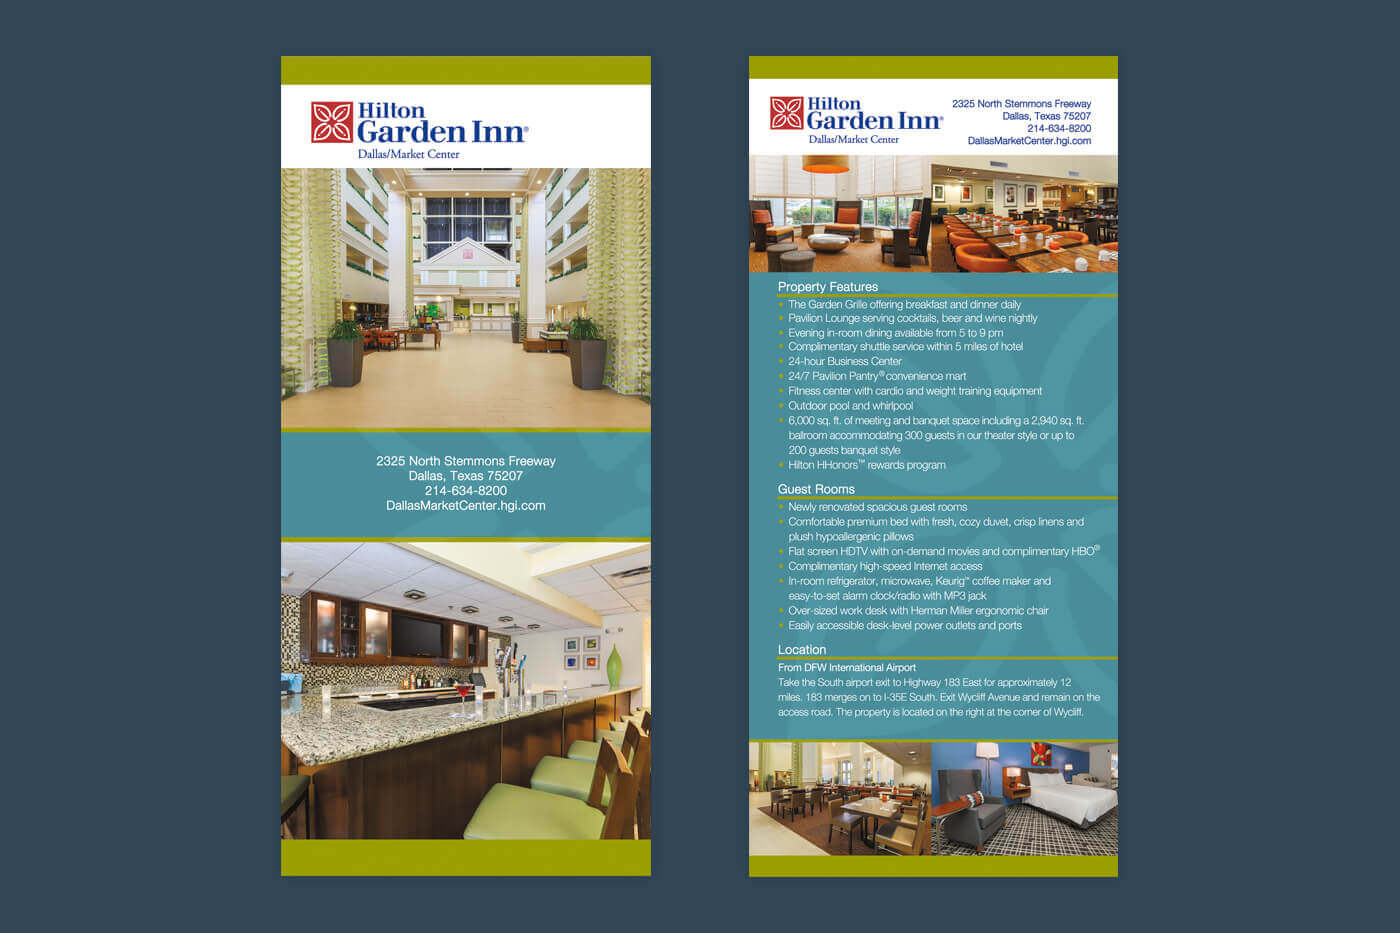 Rackcard - Hilton Garden Inn Dallas/Market Center